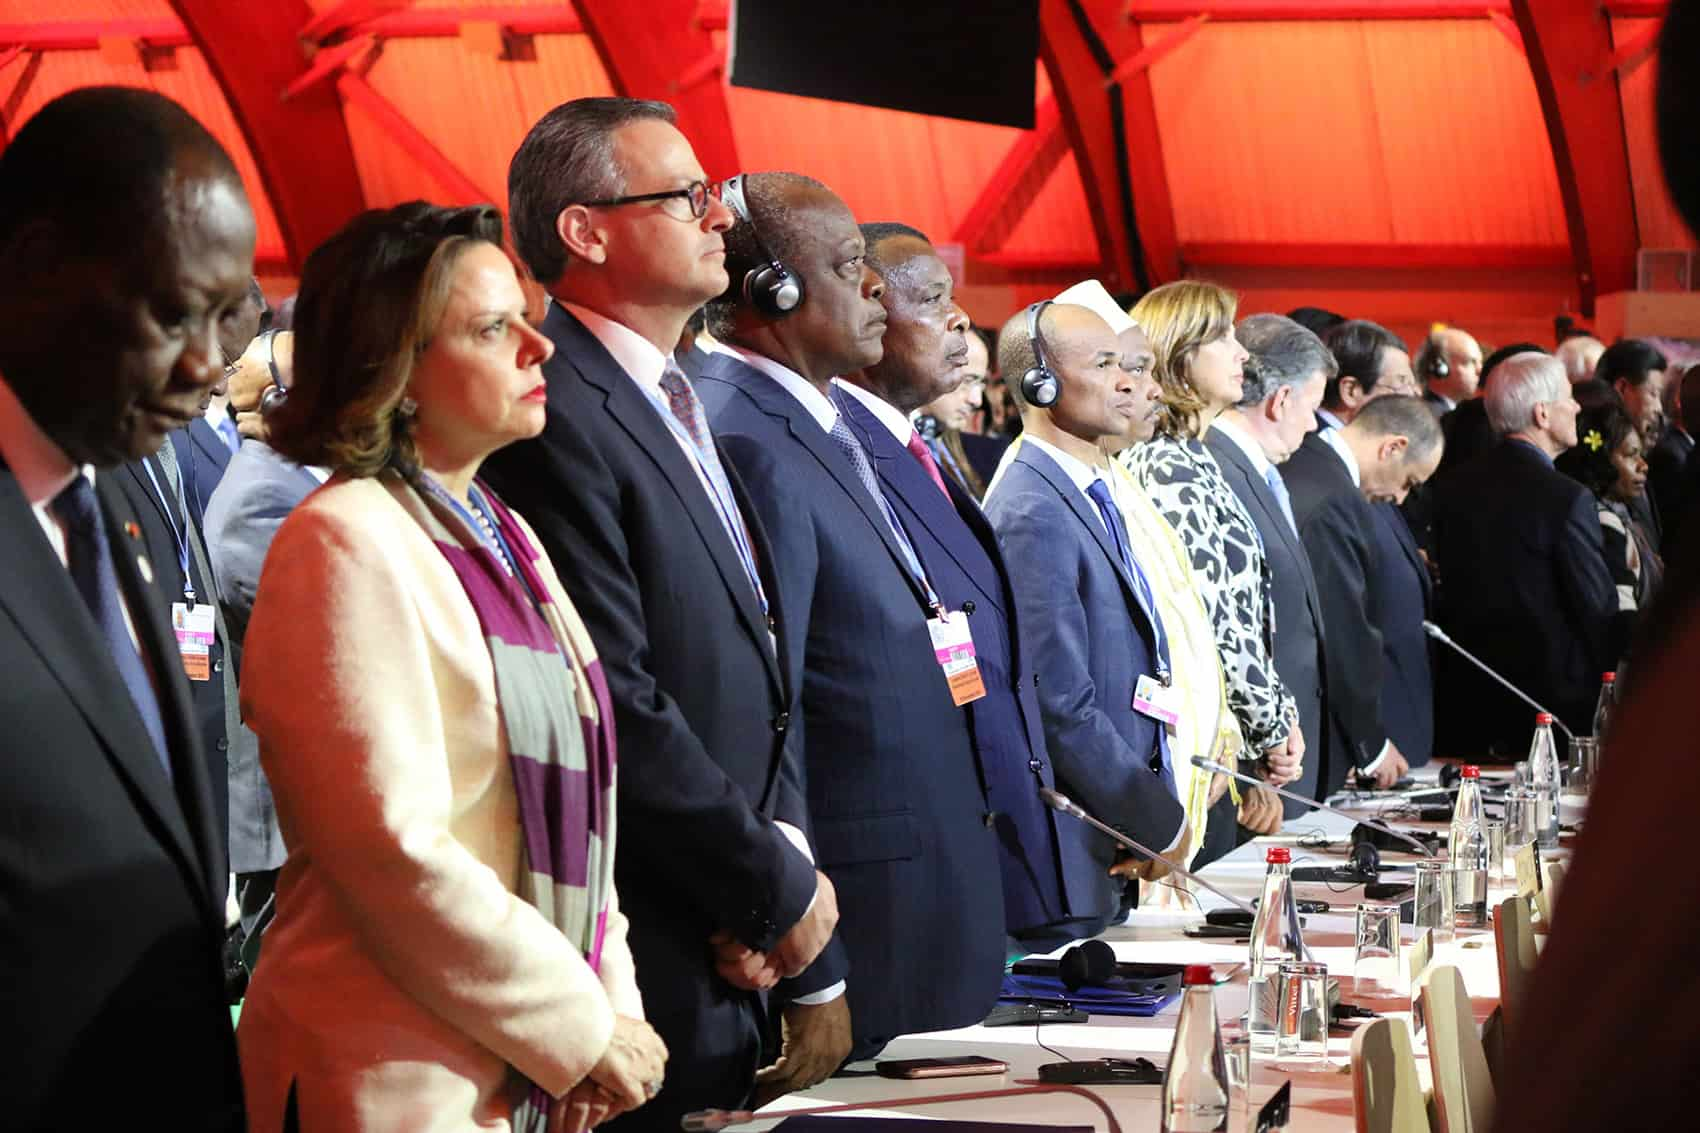 Costa Rica climate change: Vice President Ana Helena Chacón and Foreign Minister Manuel González at the first day of the U.N. Climate Change Conference in Paris